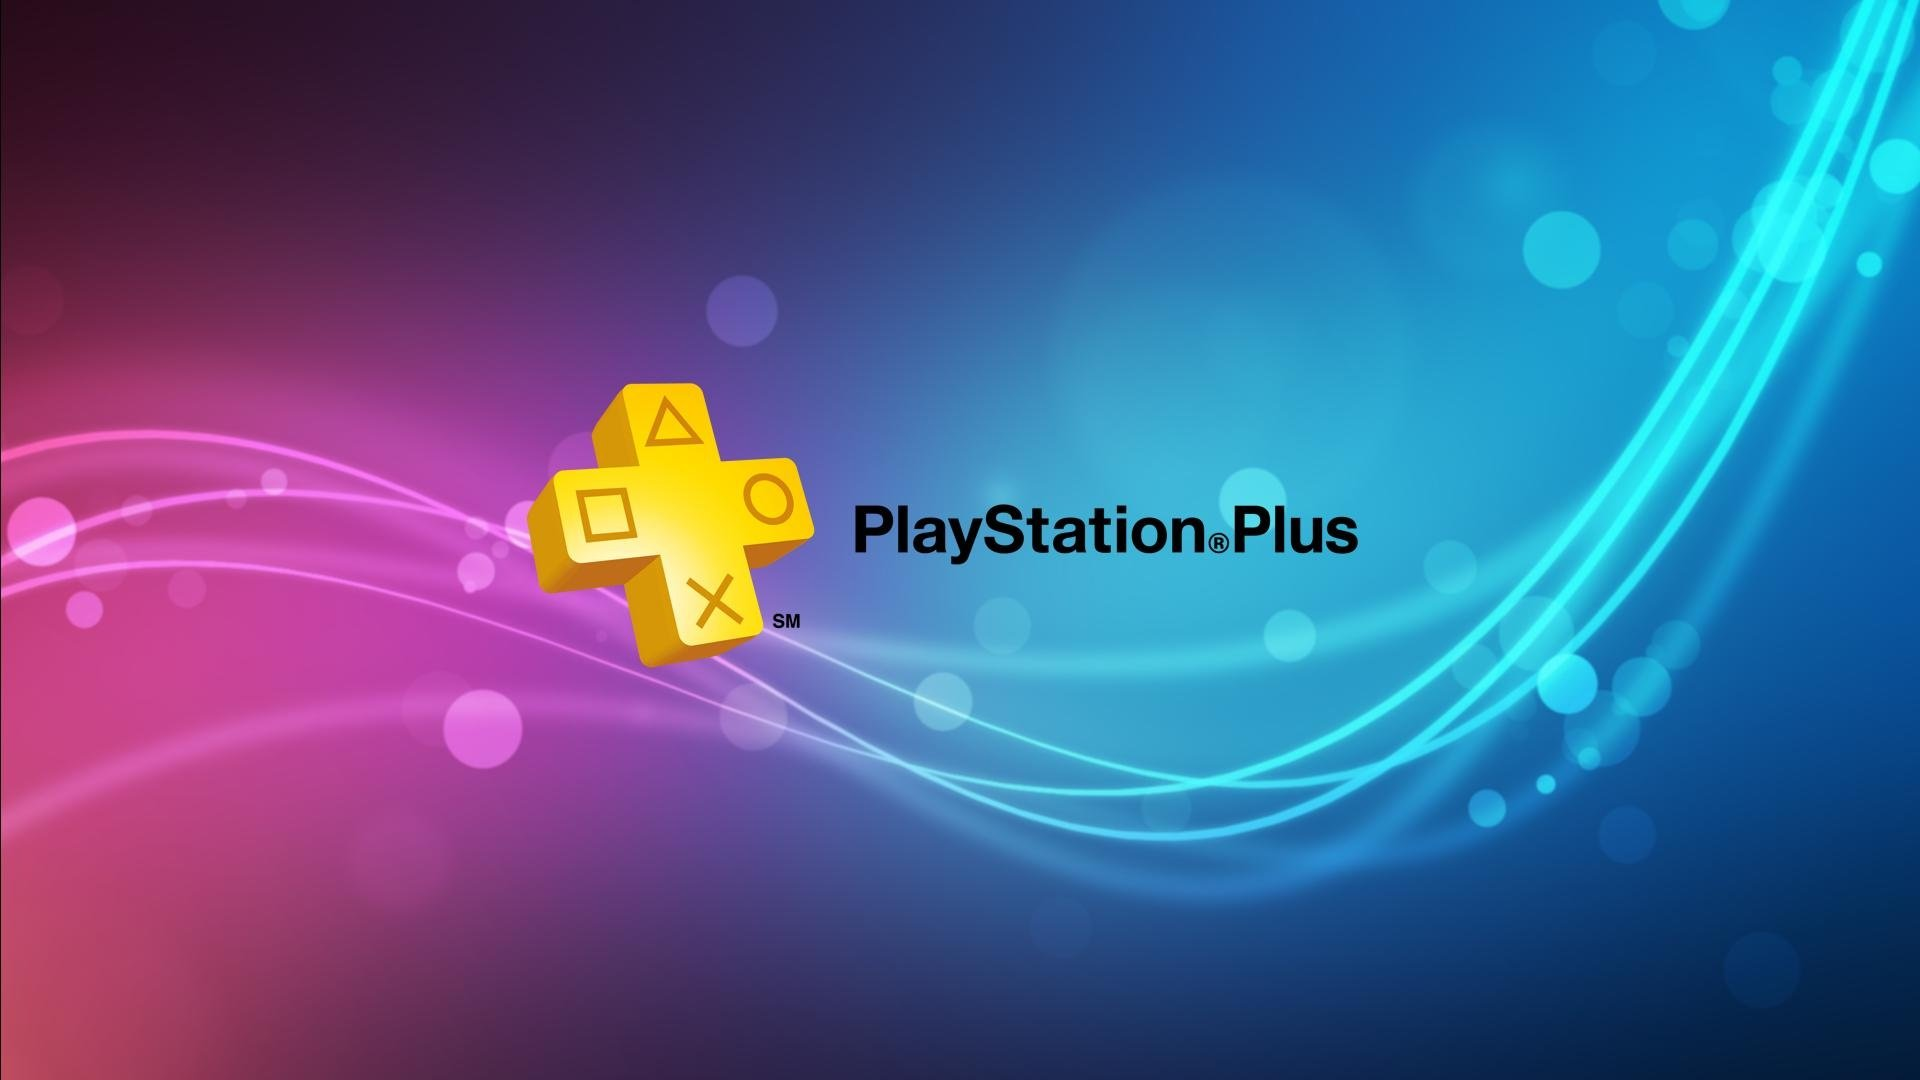 playstation plus 2020